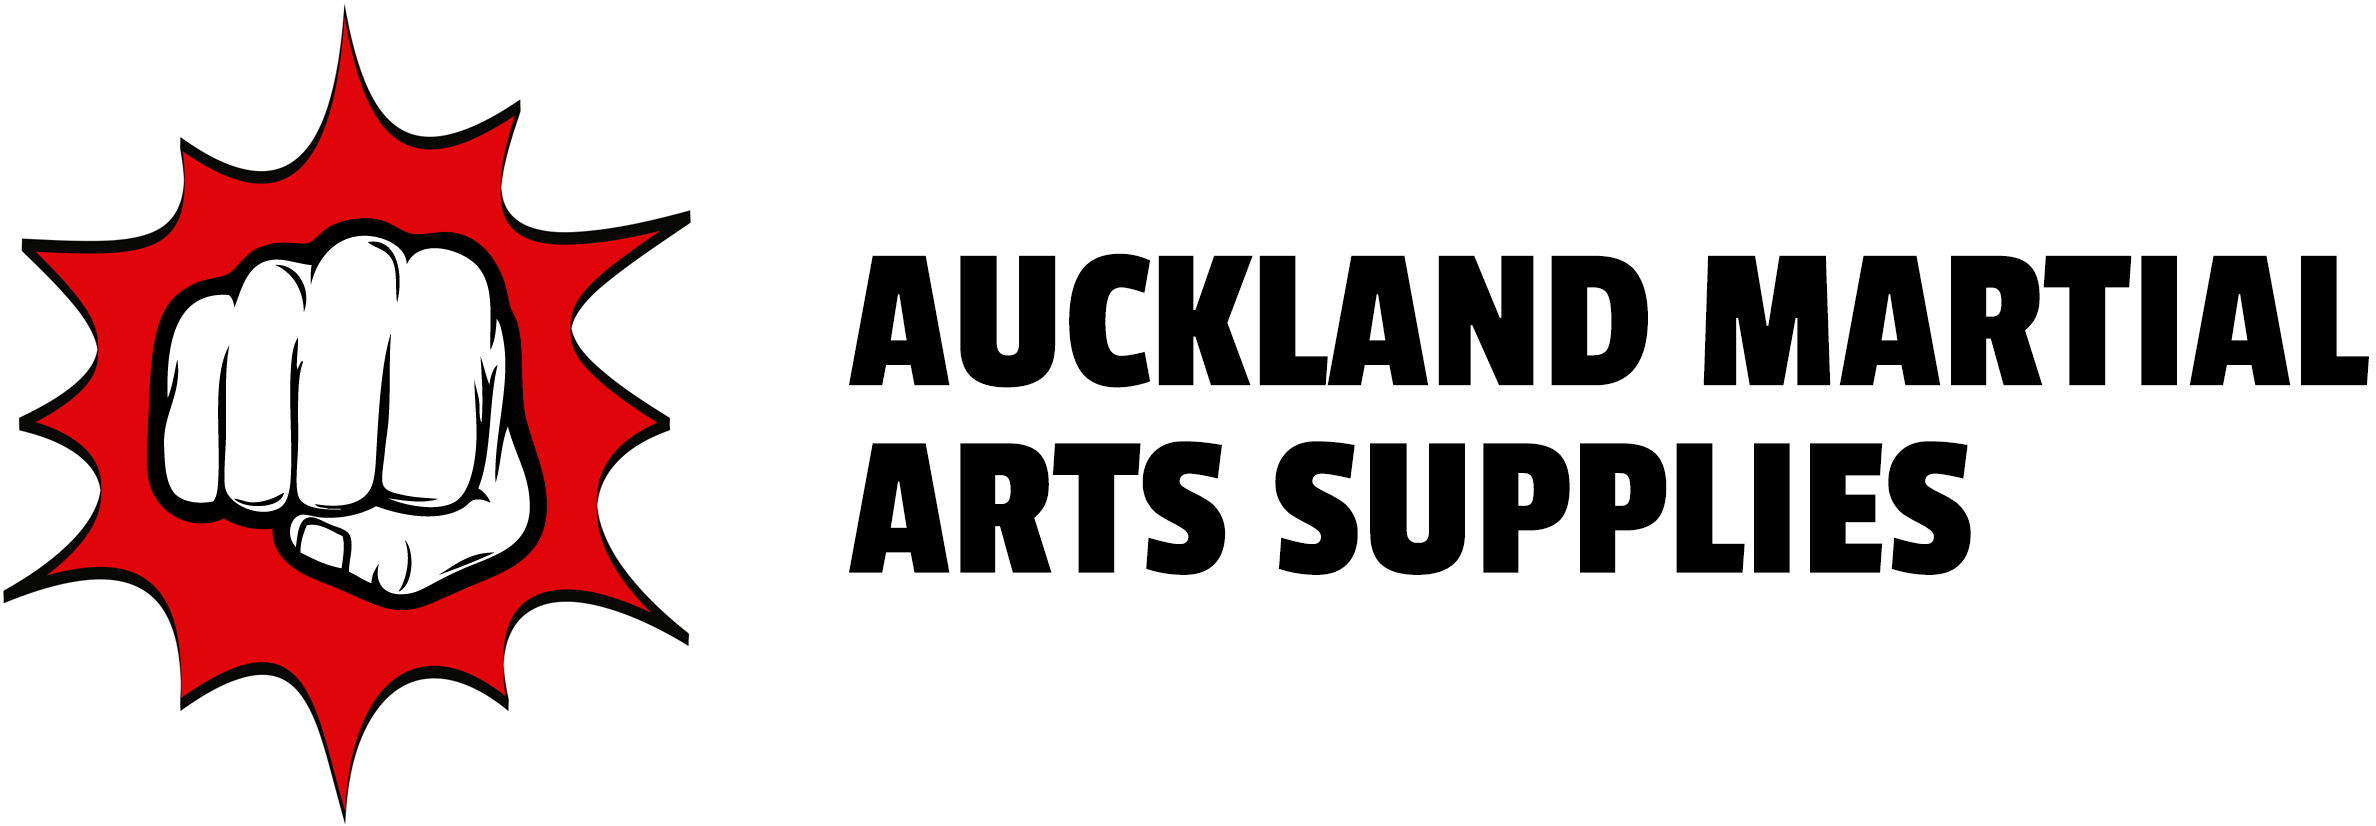 BUDO PROMOTIONS LIMITED T/A AUCKLAND MARTIAL ARTS SUPPLIES | All prices are in NZD